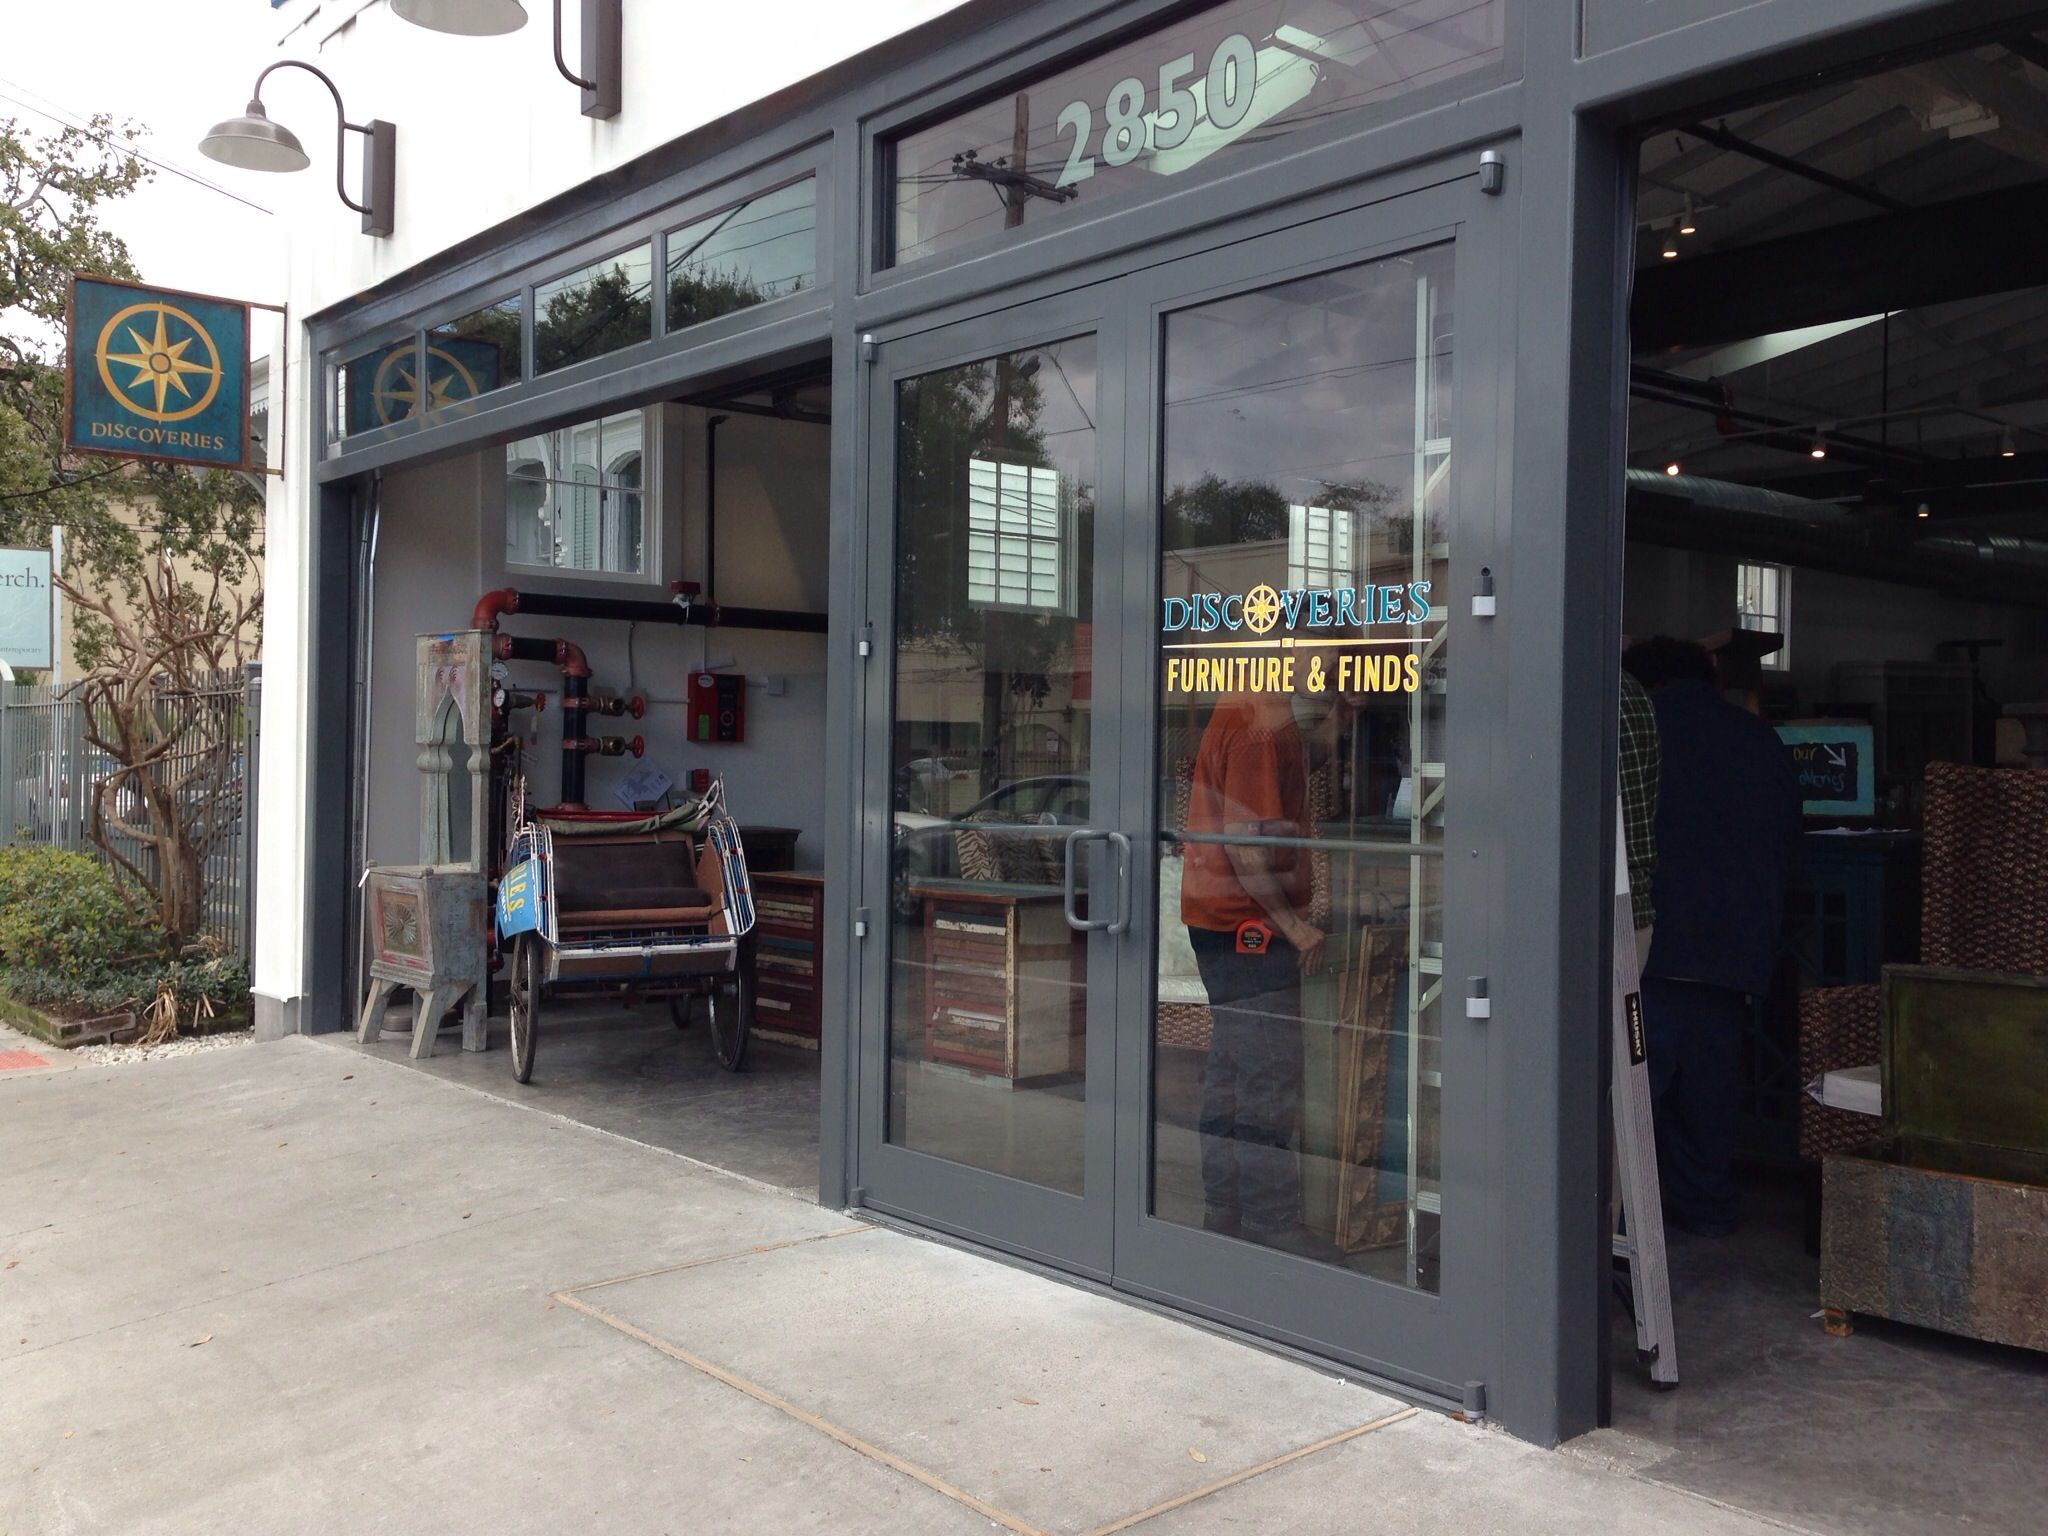 The double glass roll up warehouse doors create a very inviting storefront which takes advantage of the heavy foot and vehicular traffic